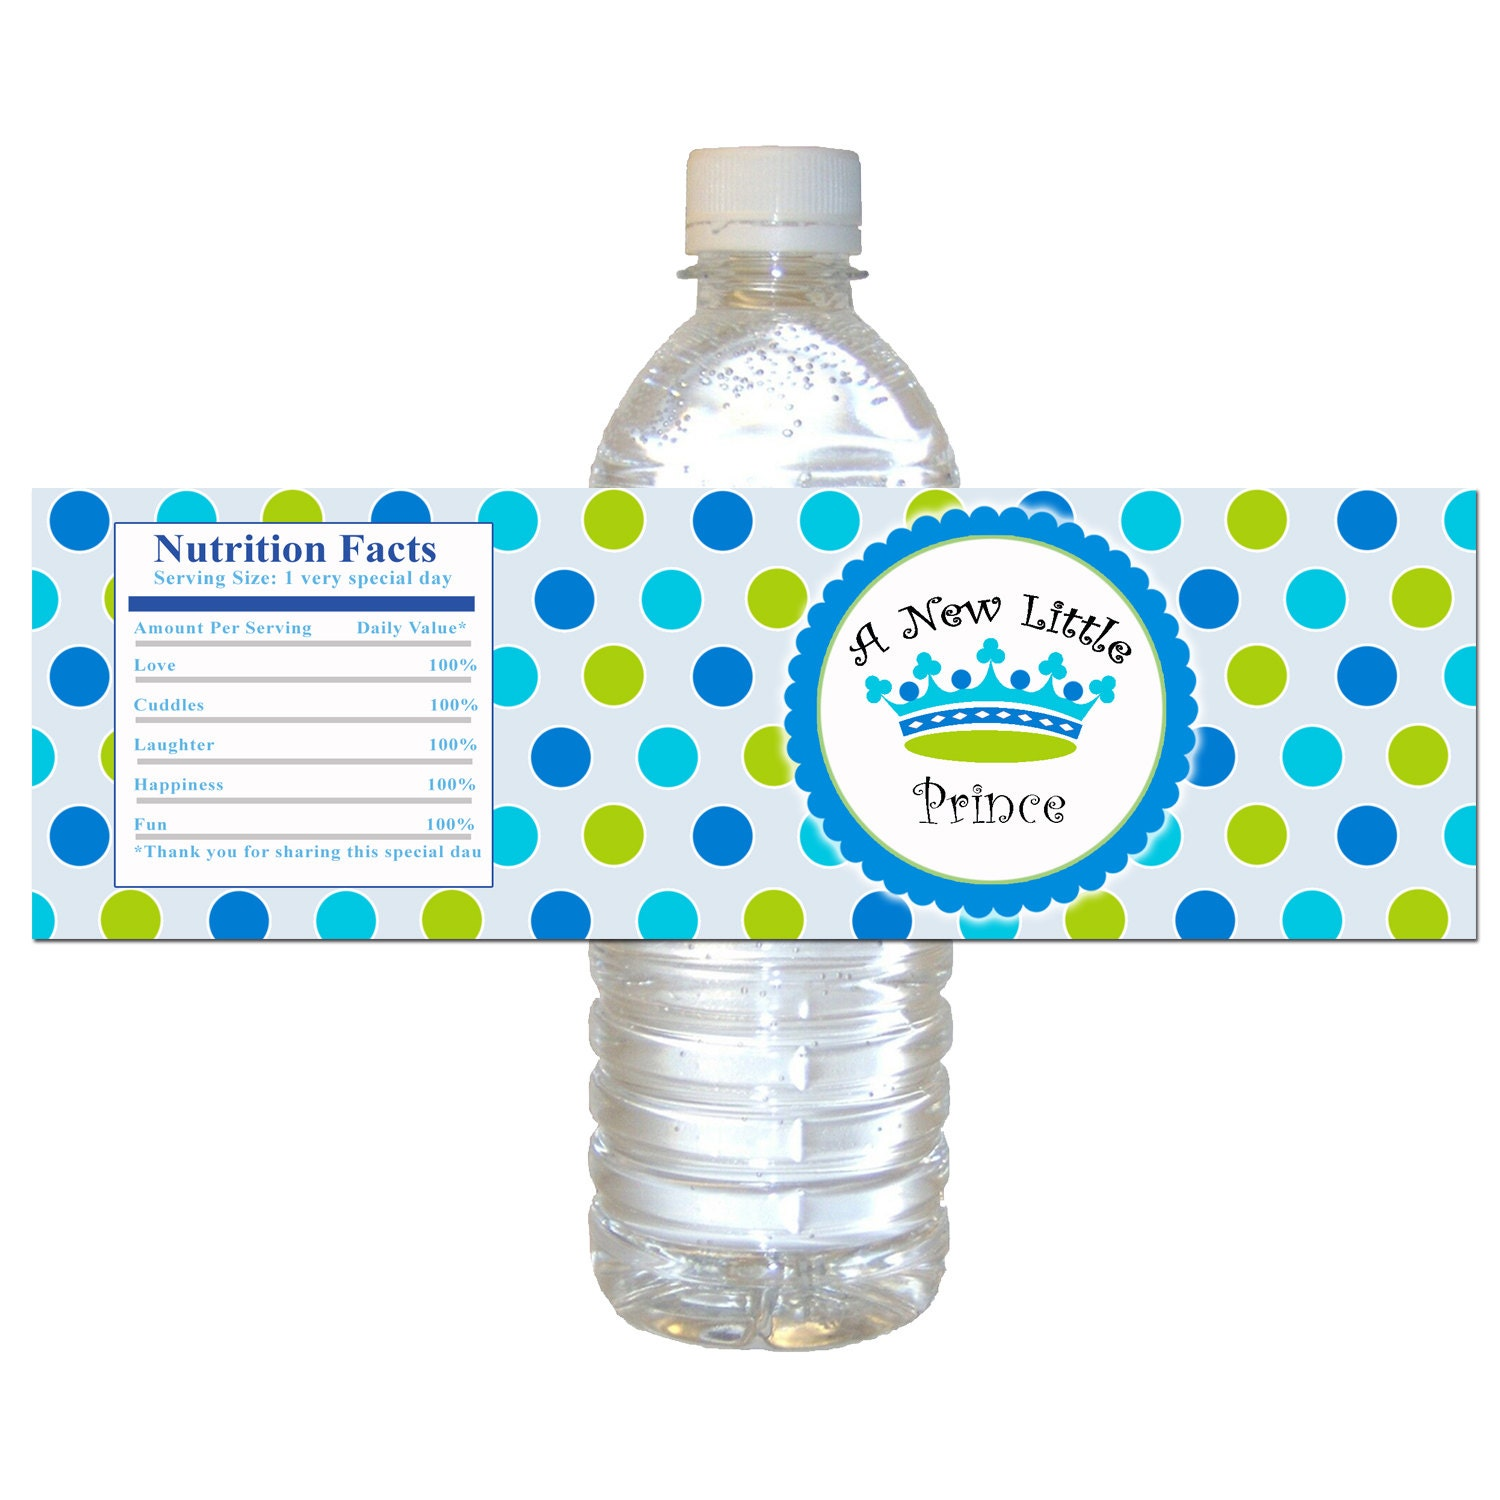 Prince water bottle labels blue green polka dots by pinkthecat for A new little prince baby shower decoration kit